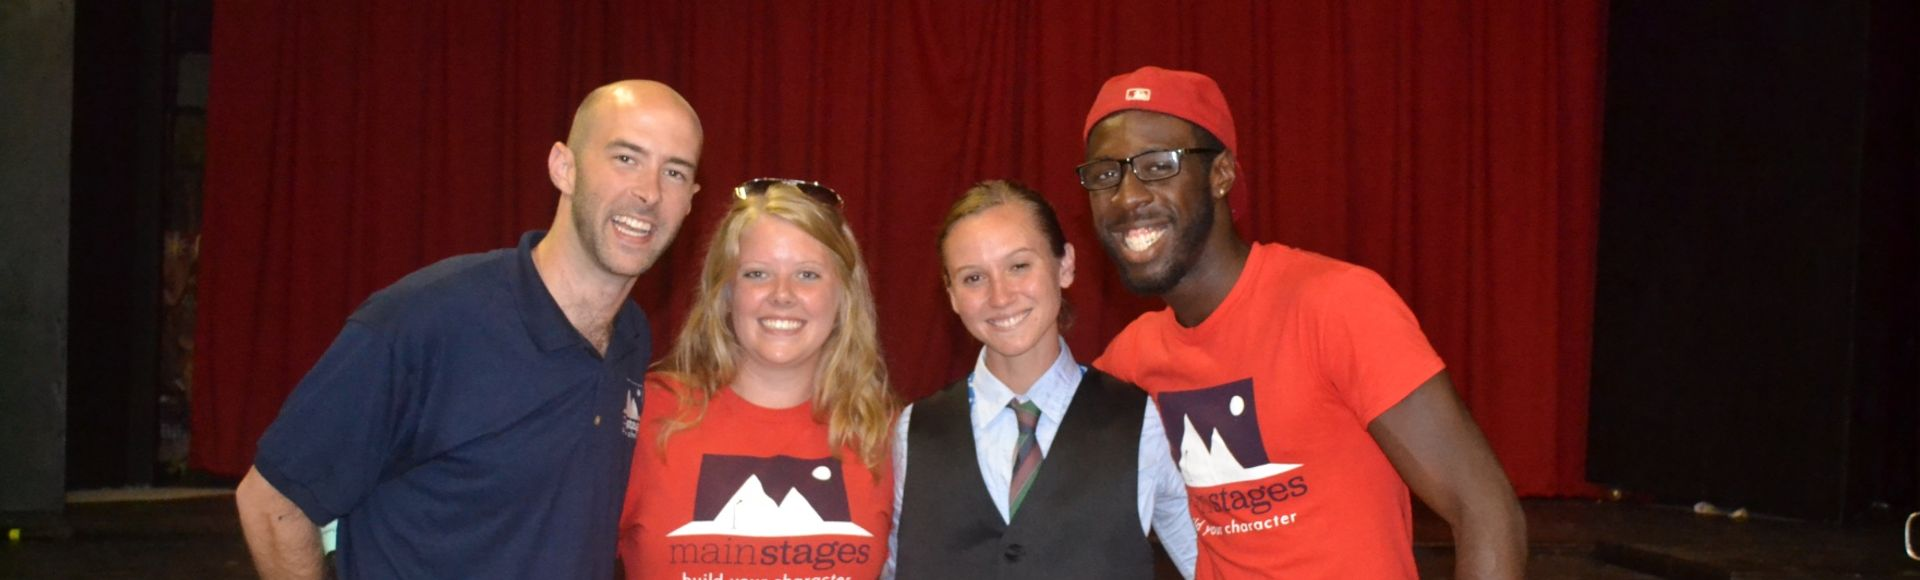 camp staff posing with mainstages staff